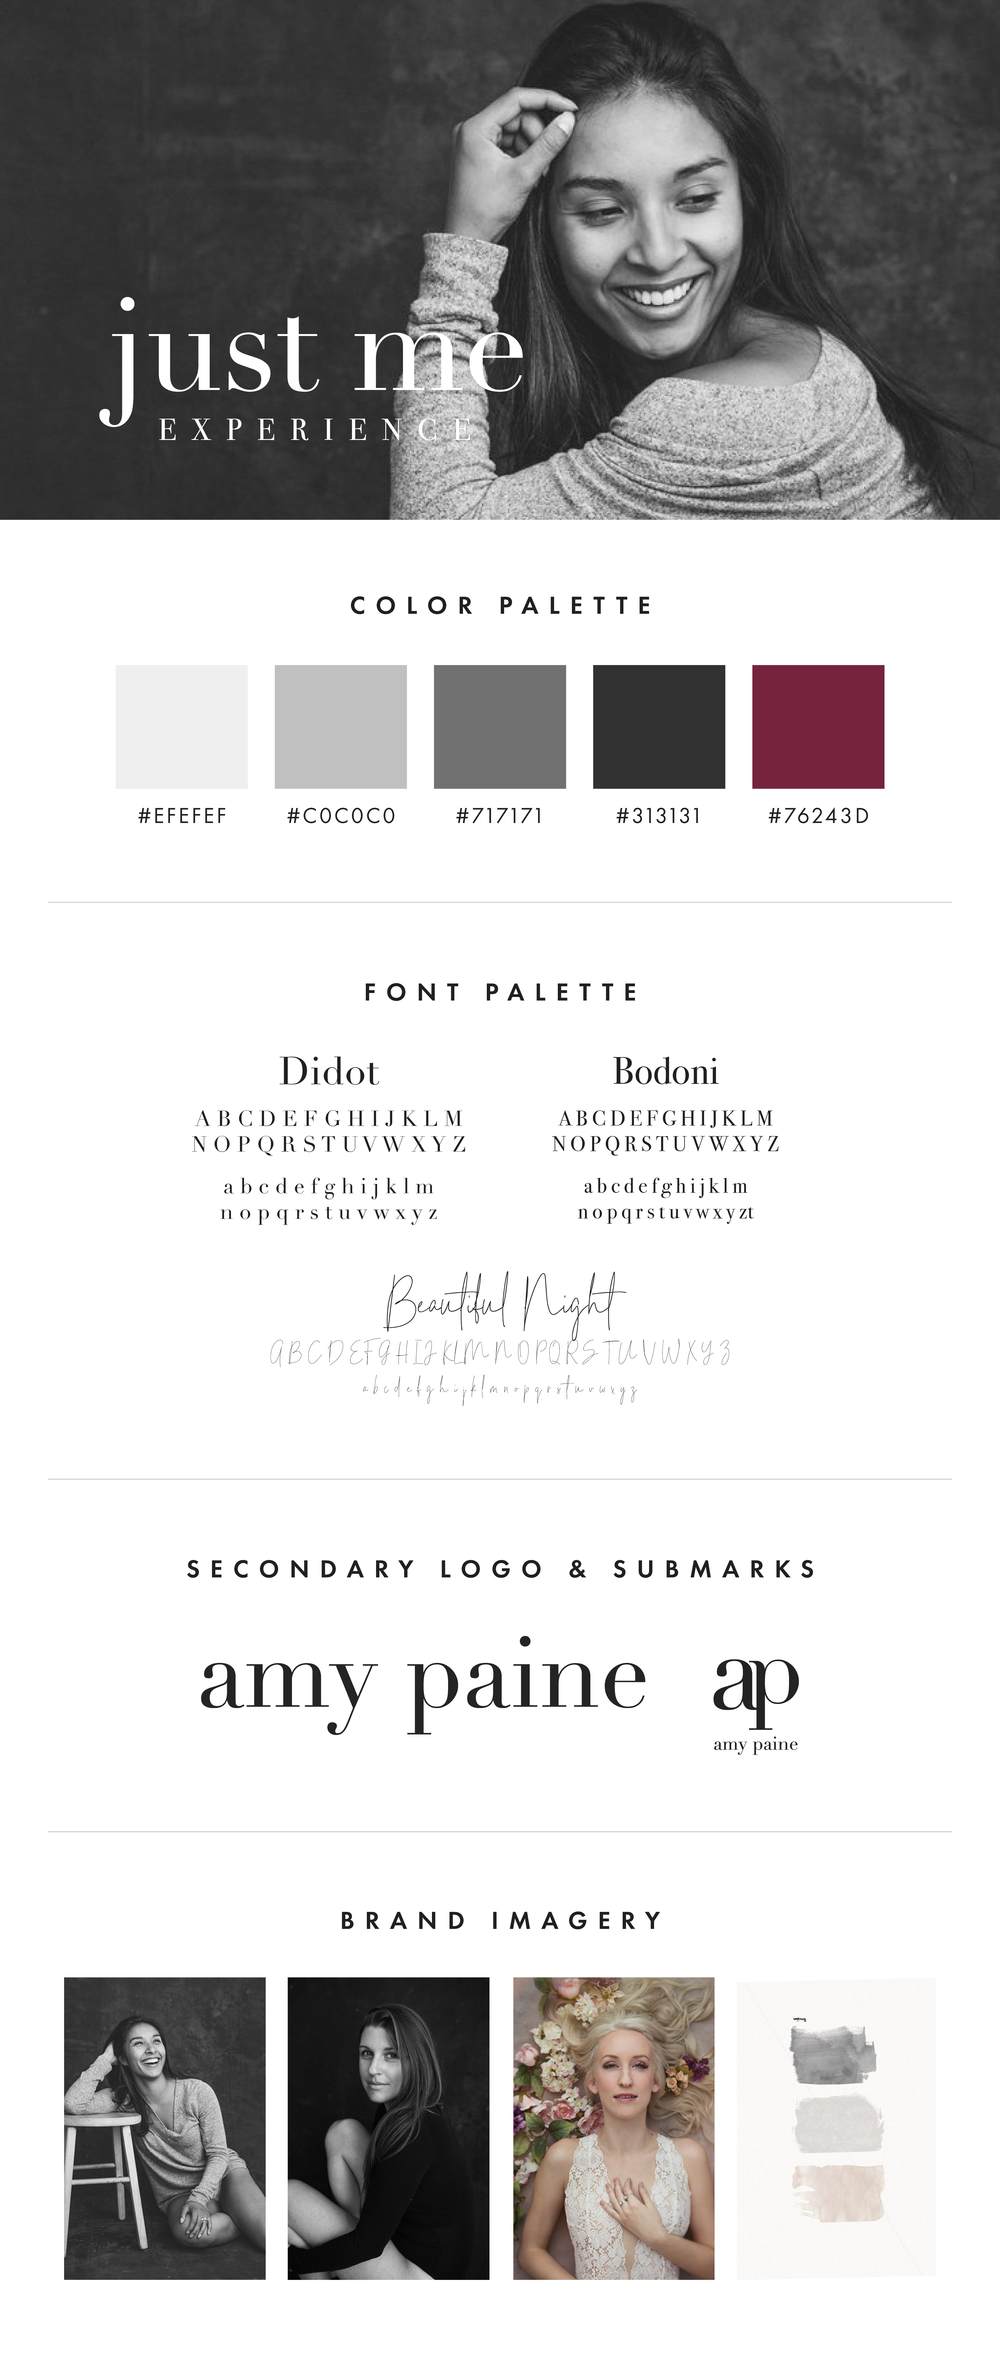 Brand Identity Design | Brand Style Guide | Brand Inspiration | Color Palette Inspiration | Minimalist Brand Design | Branding Board | Visual Identity | Brand And Graphic Design | Molly Ho Studio